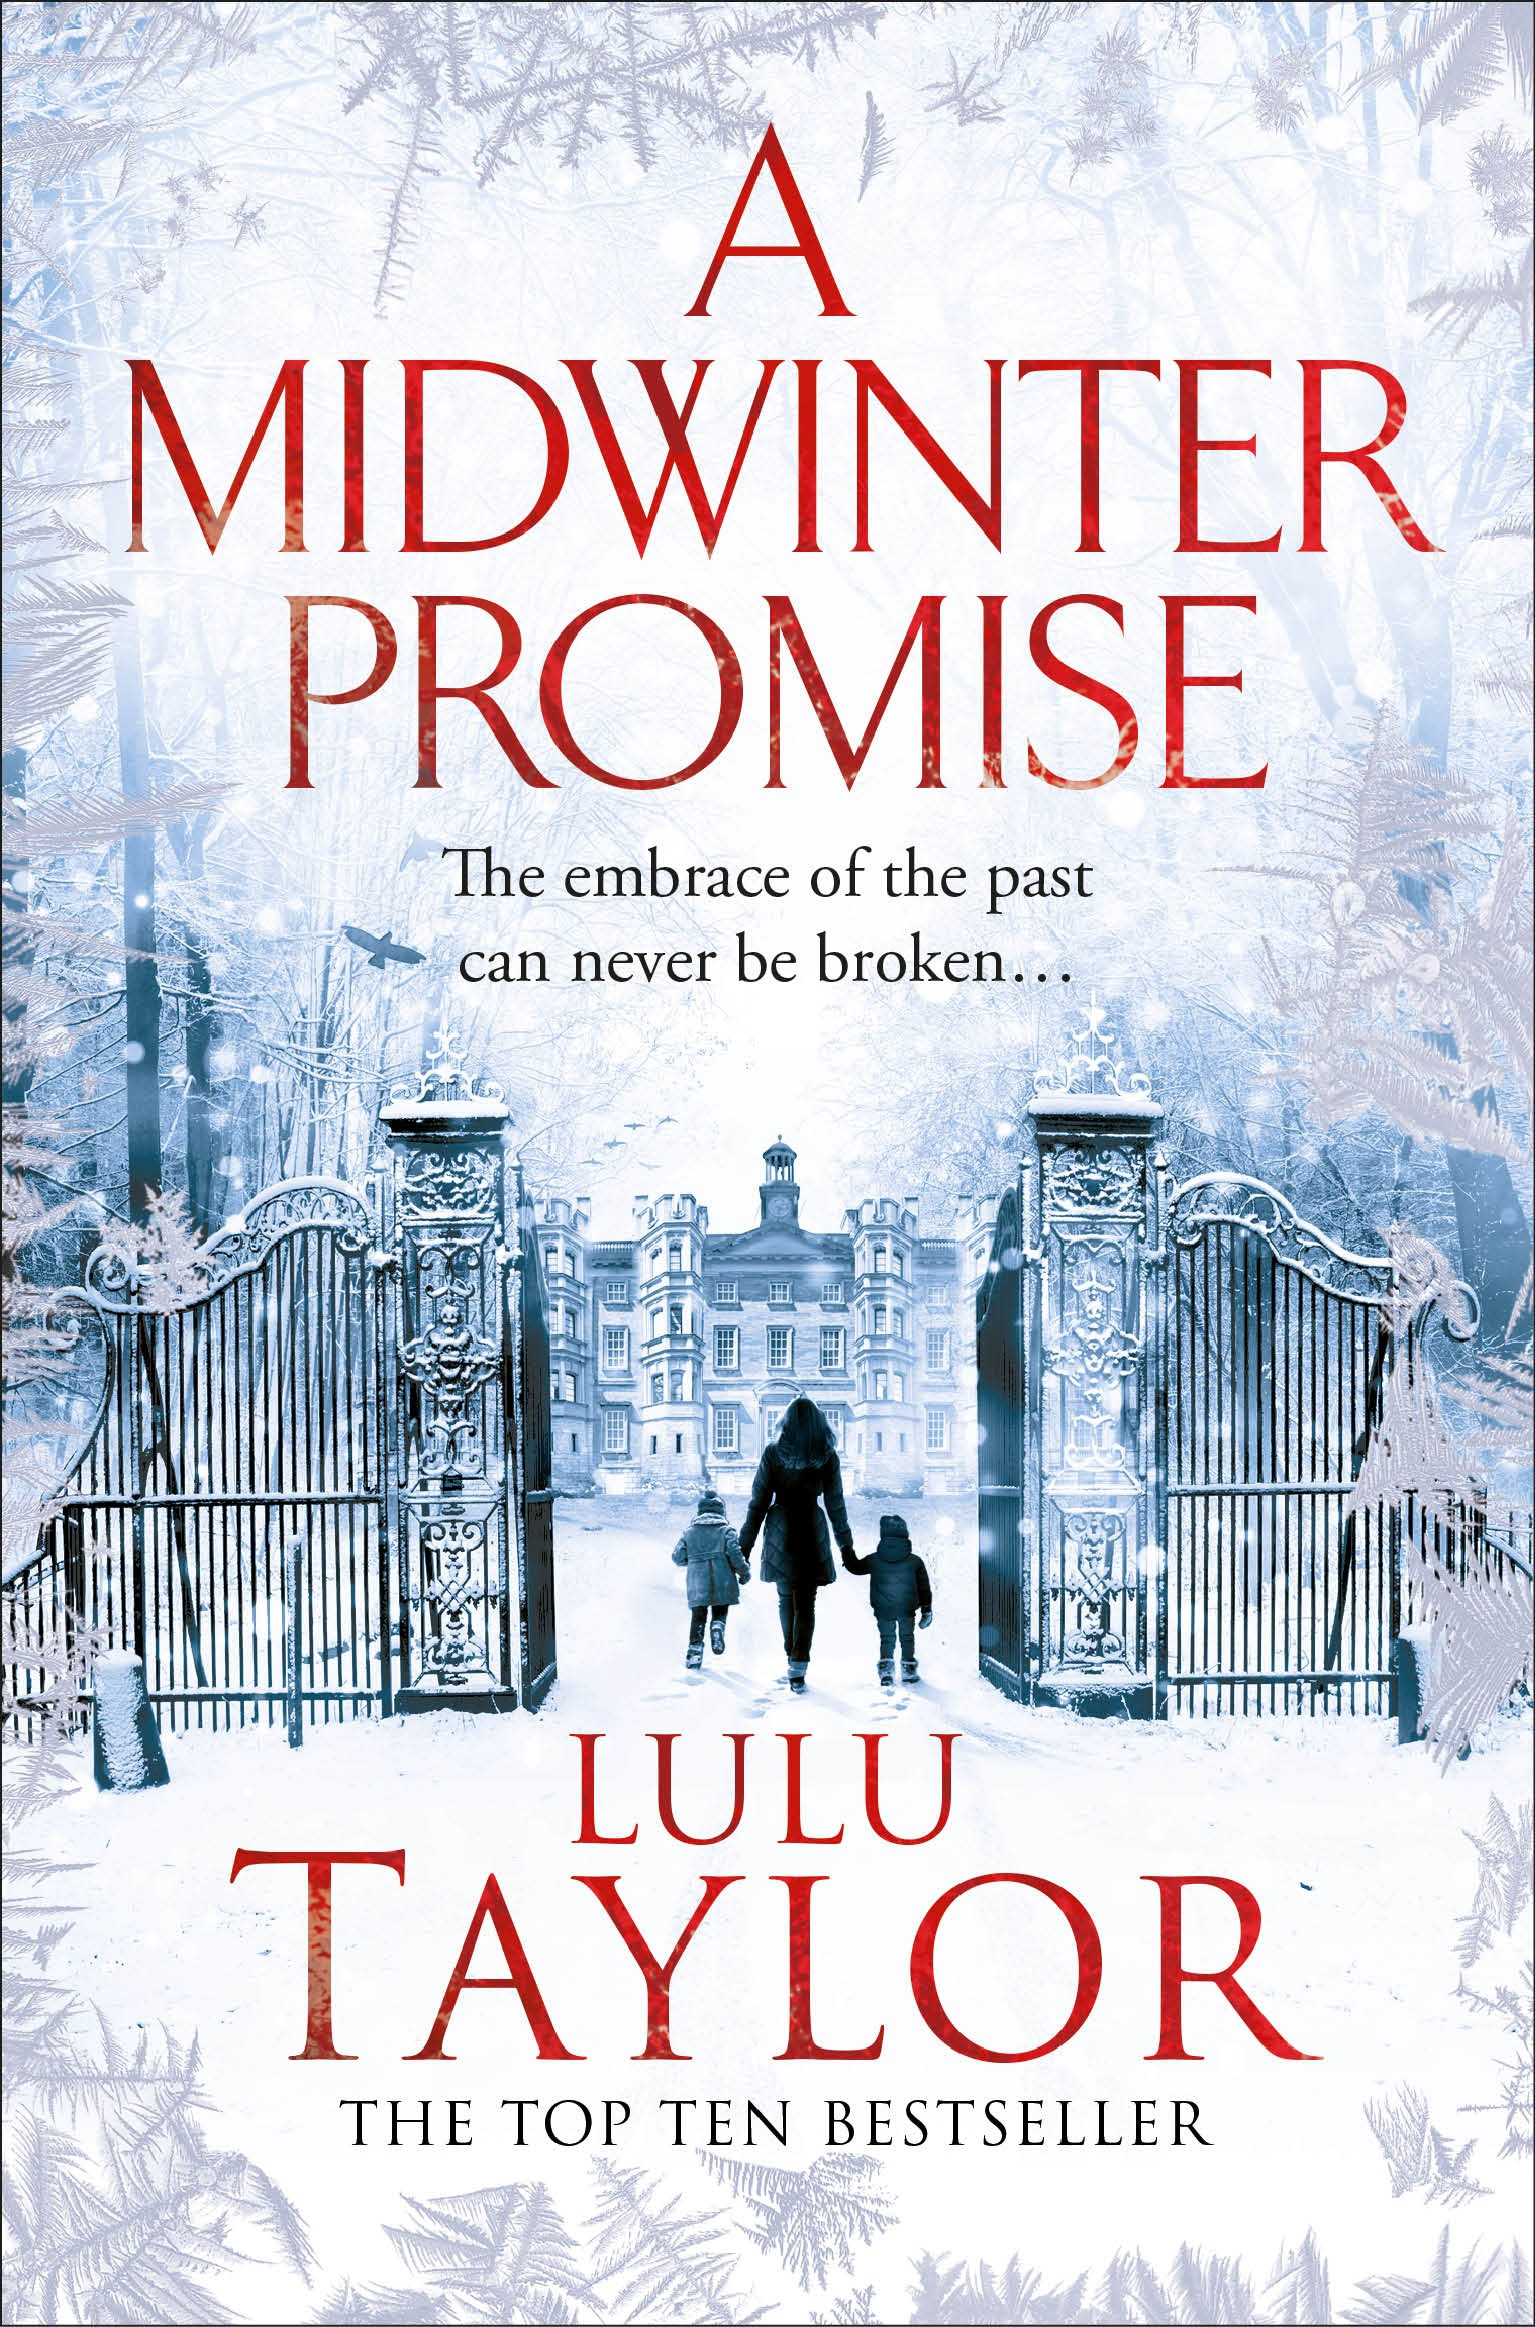 A Midwinter Promise Lulu Taylor new book novel cover